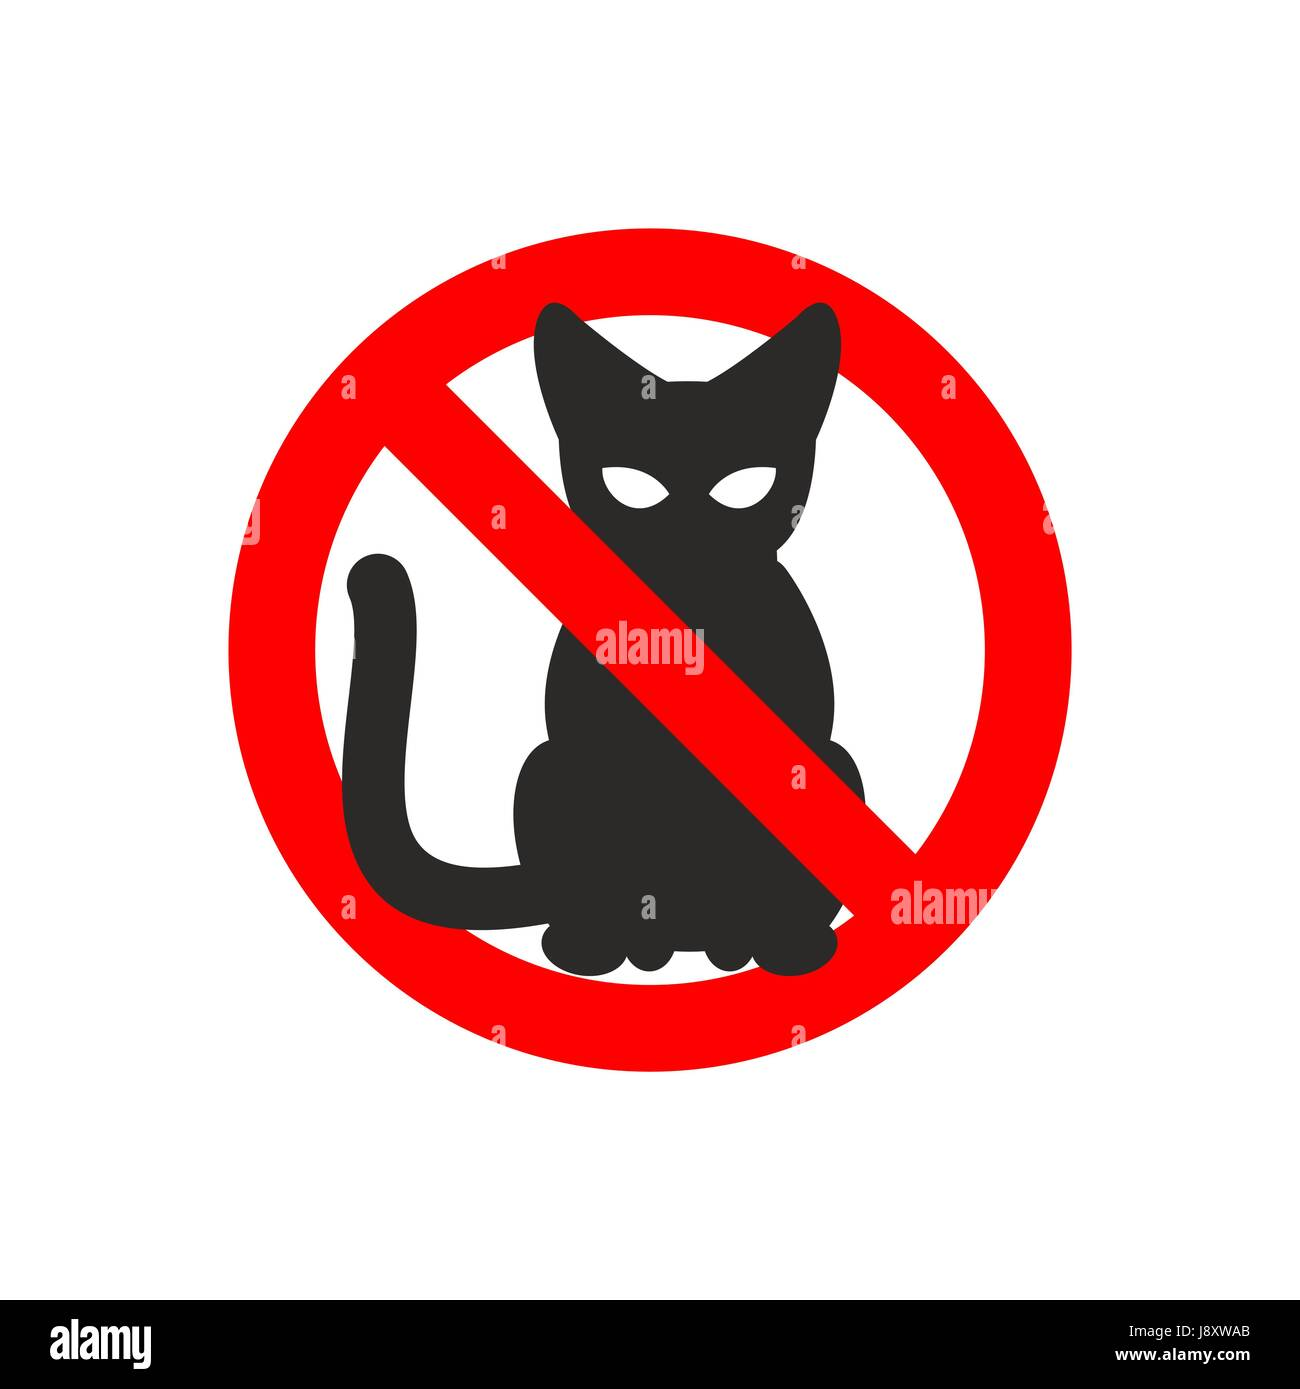 Stop cat. Vector sign No cats. Ban pet. Black cat silhouette. Sign ban slashed red circle - Stock Image